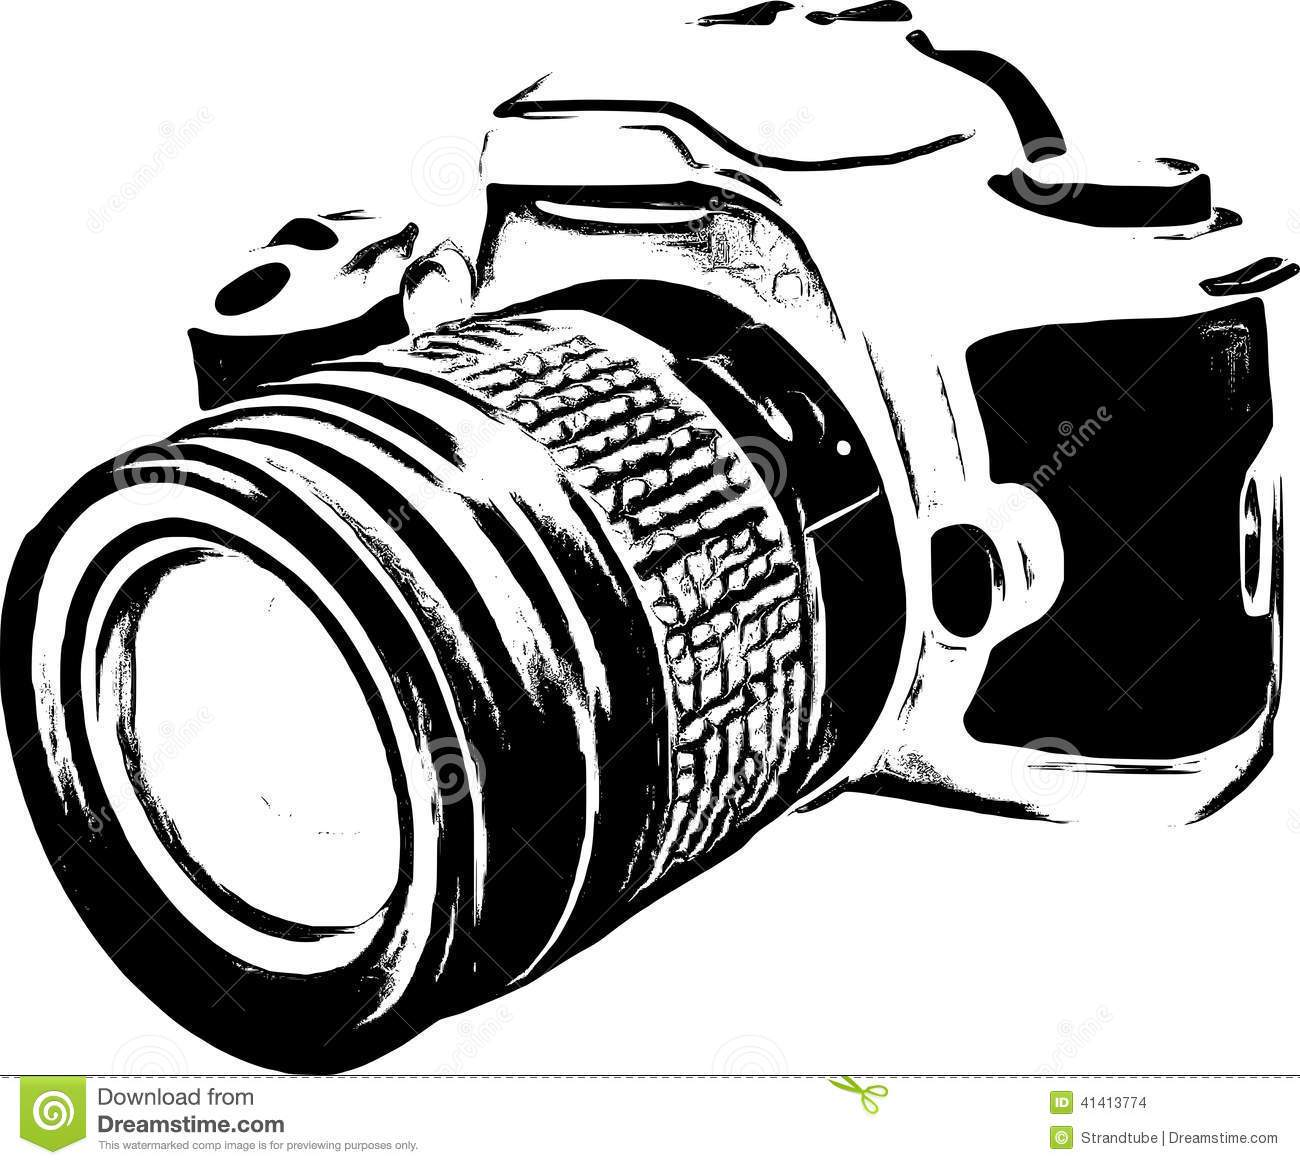 Dslr clipart black and white Camera camera white white Clipart